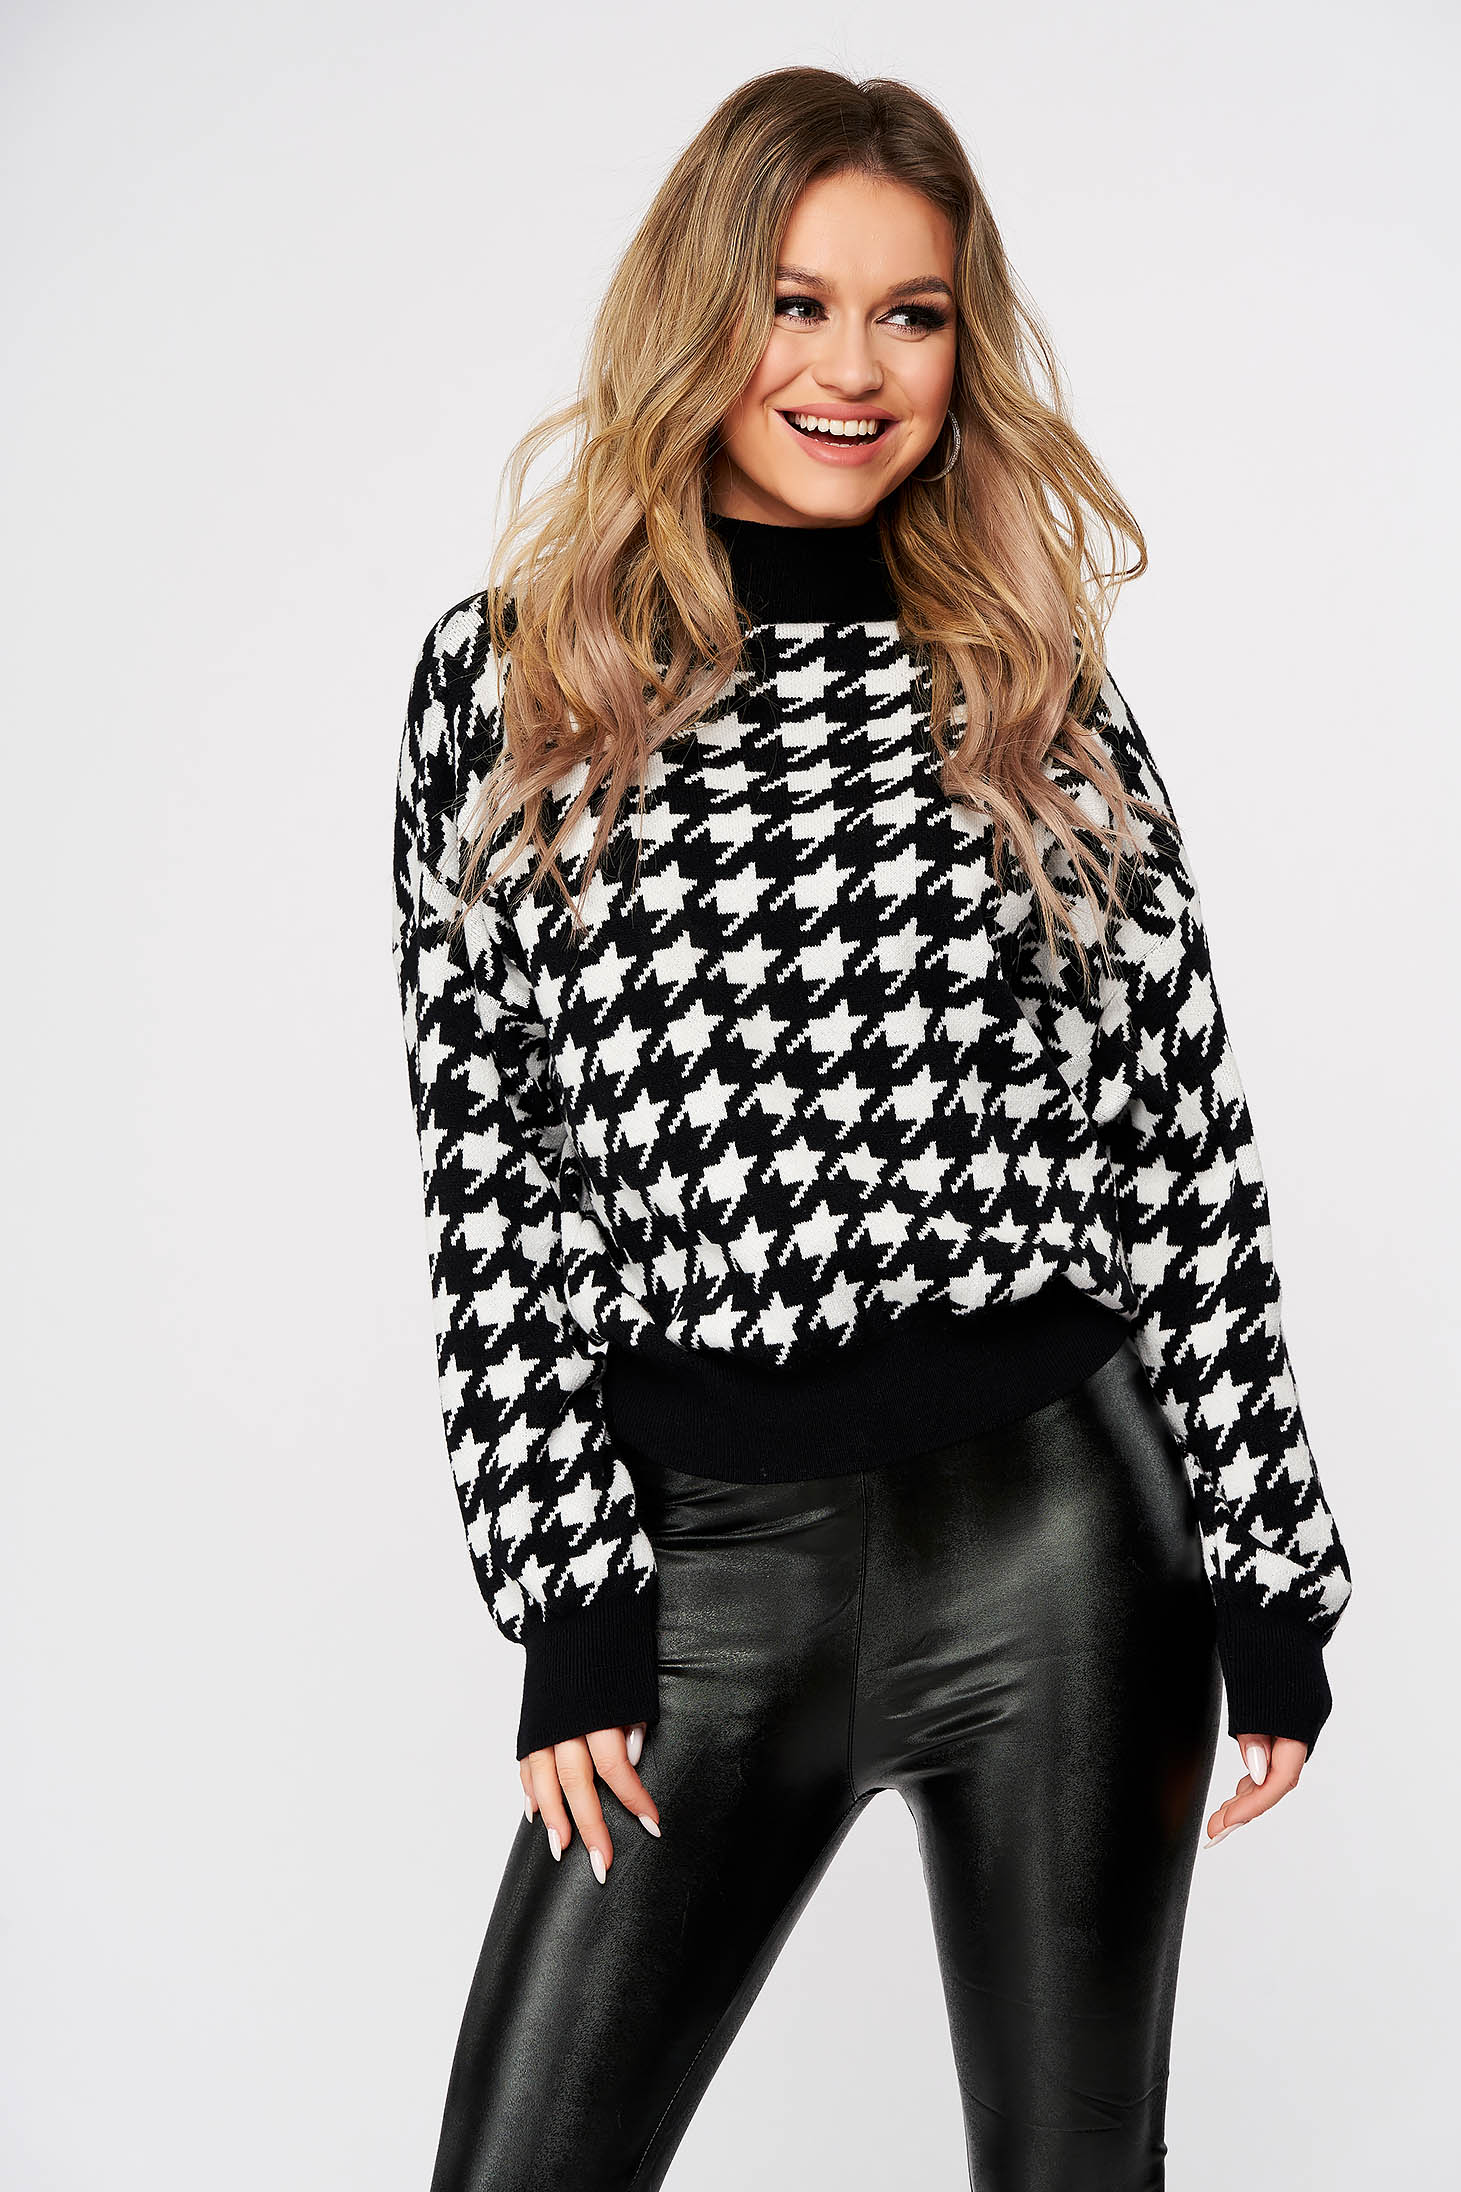 Black sweater with chequers knitted turtleneck casual